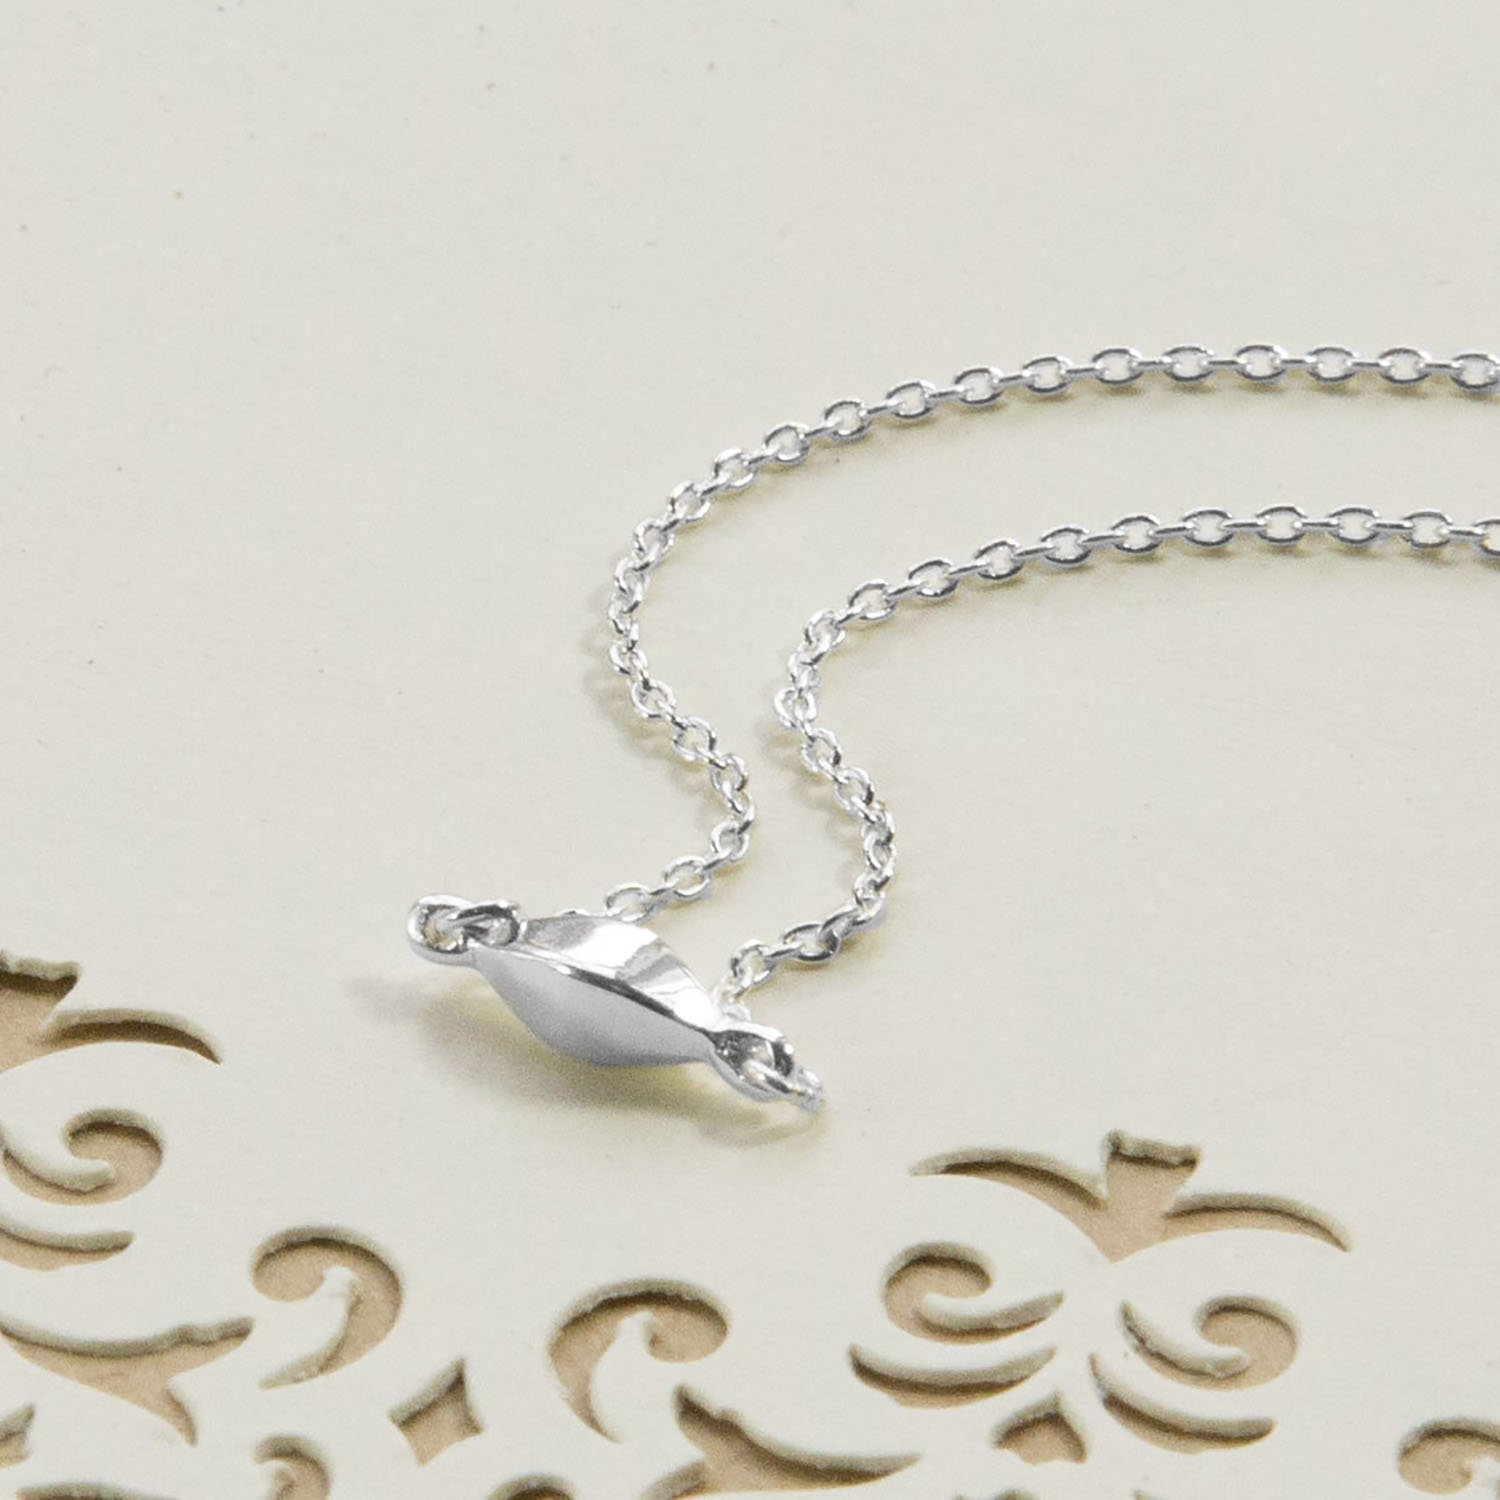 Delicate rhombus pendant on a very fine silver chain on a white background